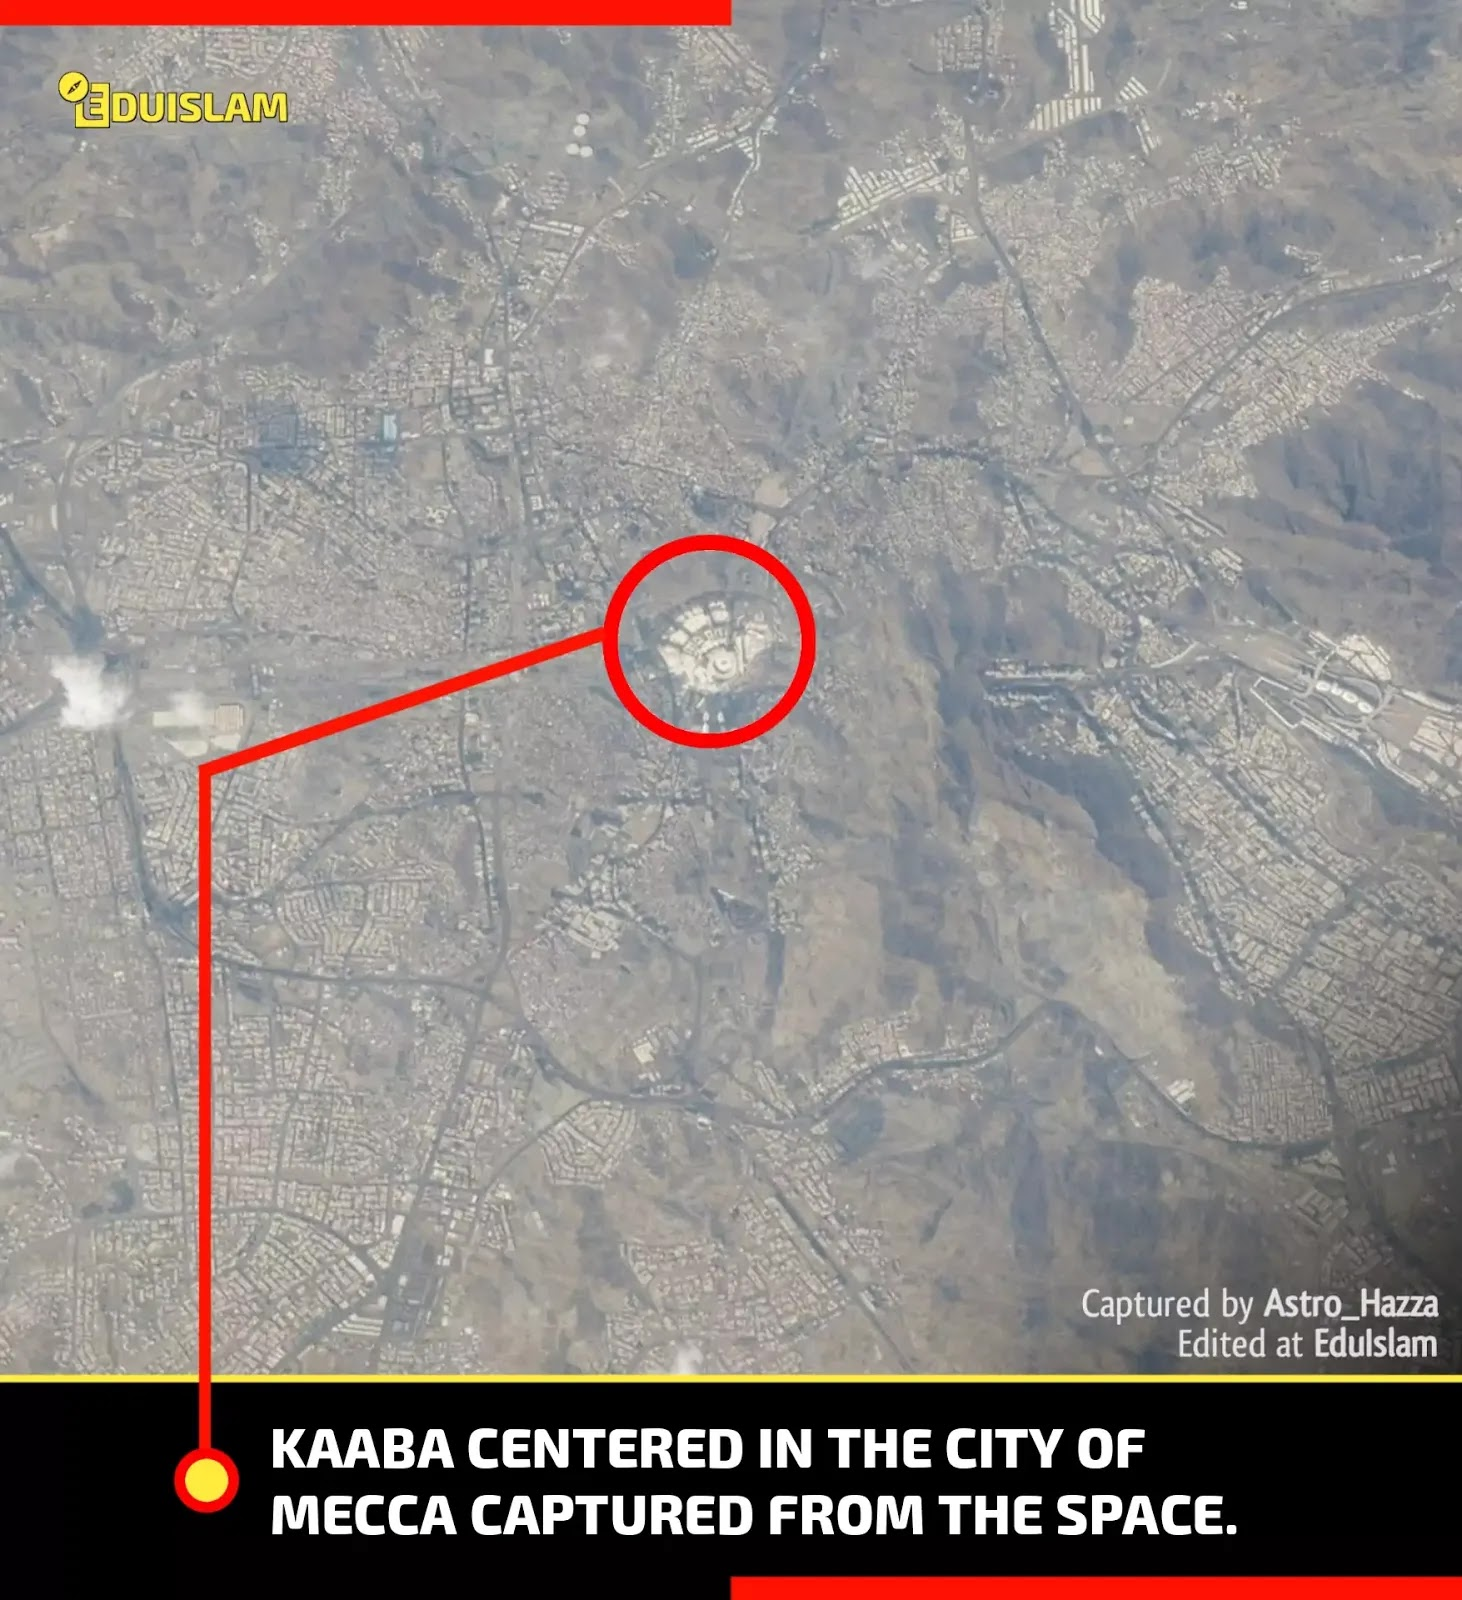 Picture of Kaaba from space